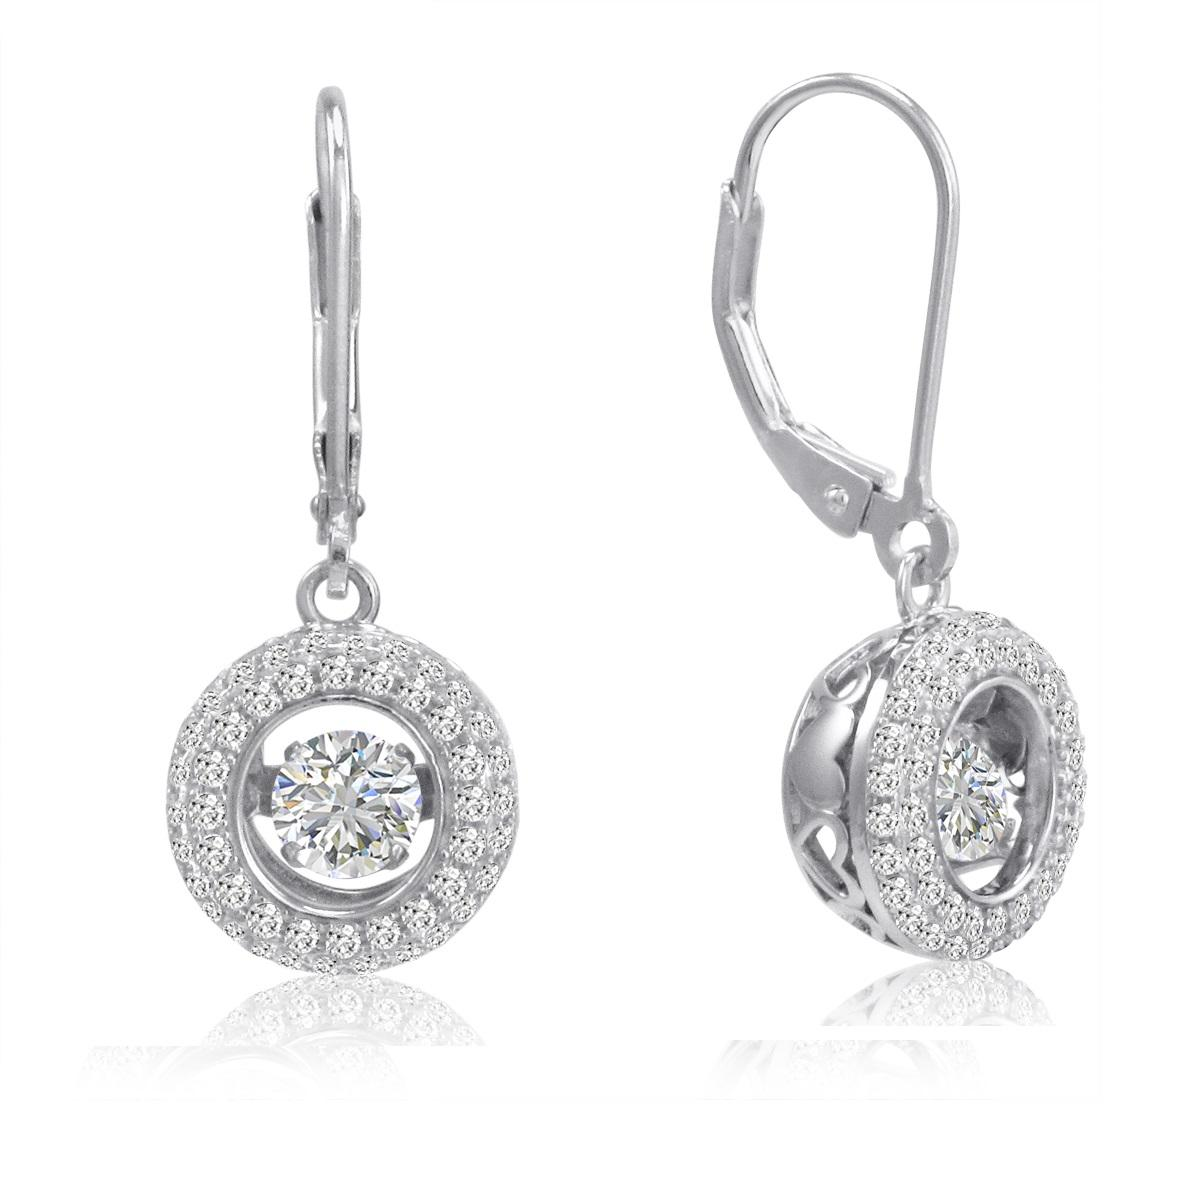 Amanda Rose Sterling Silver Gems in Motion Lever Back Earrings made with Austrian Crystal Zirconia